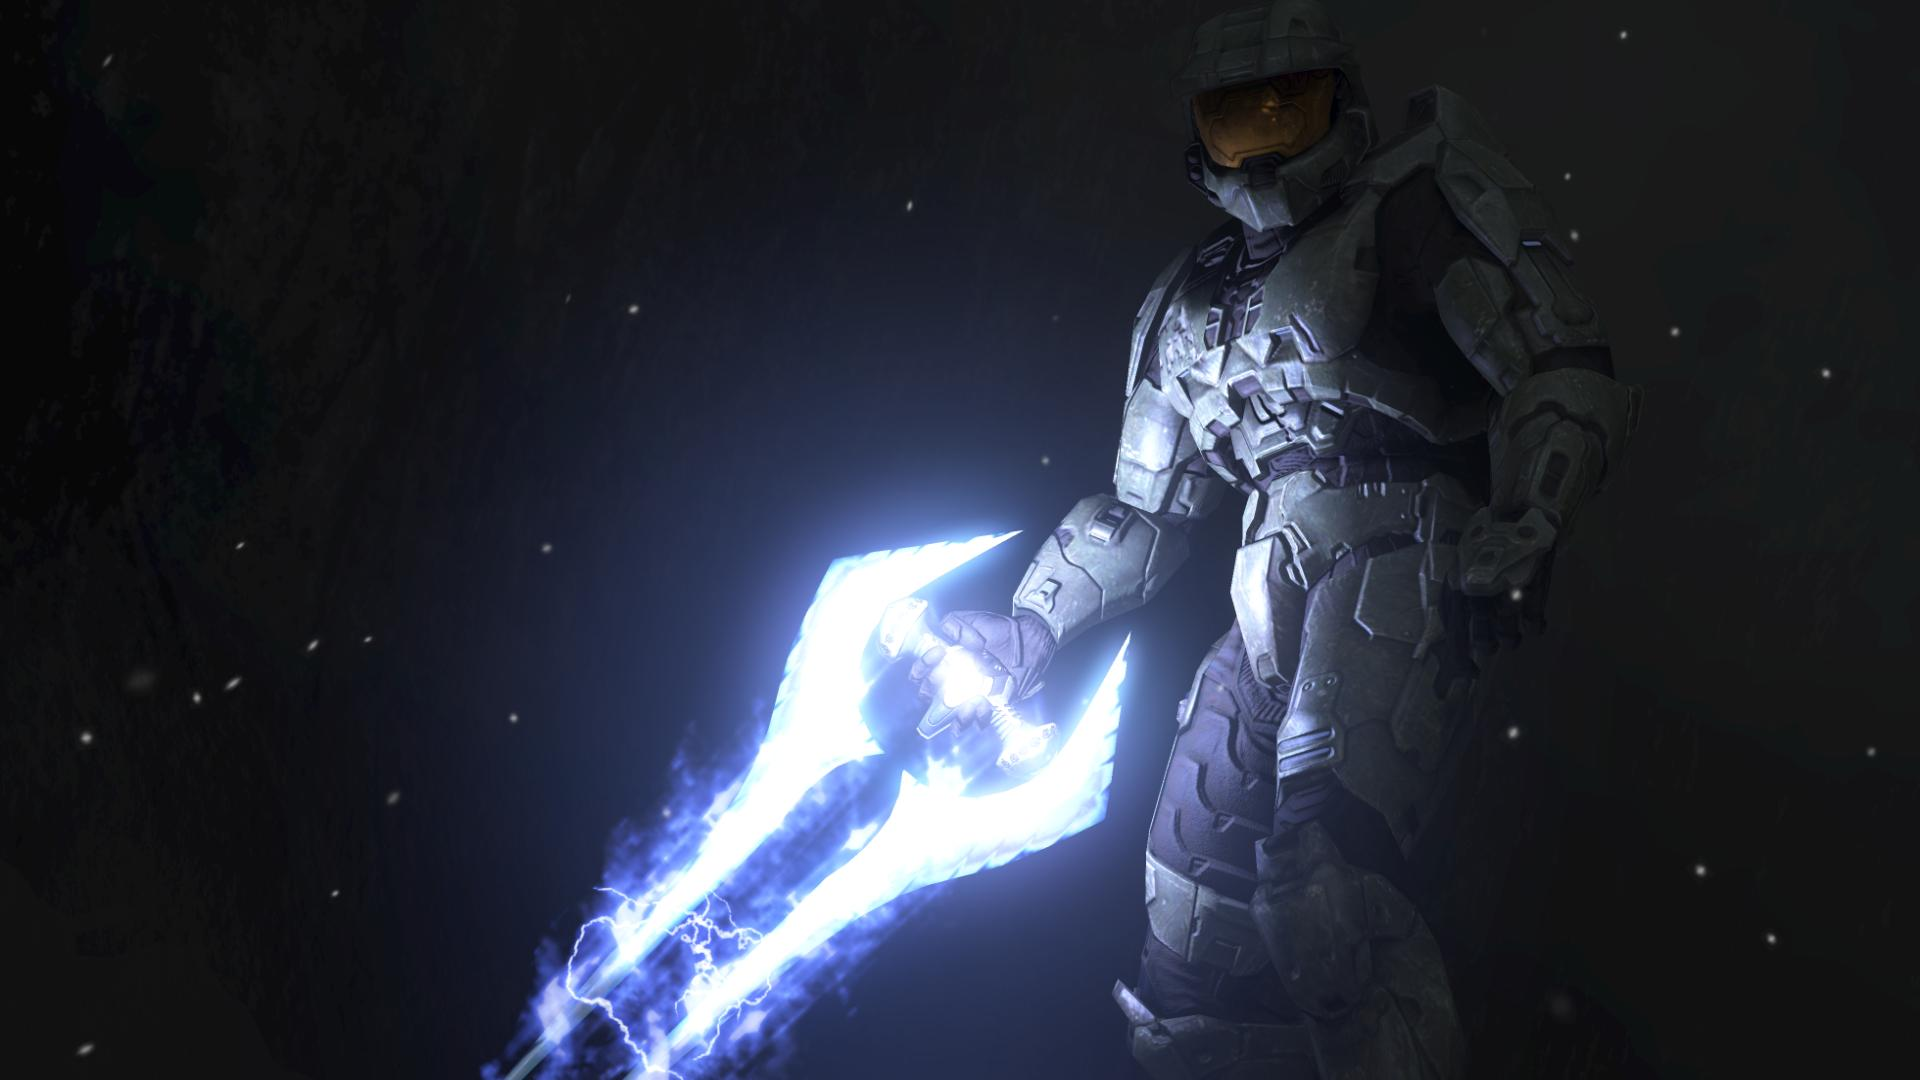 Halo HD Wallpaper | Background Image | 1920x1080 | ID ...